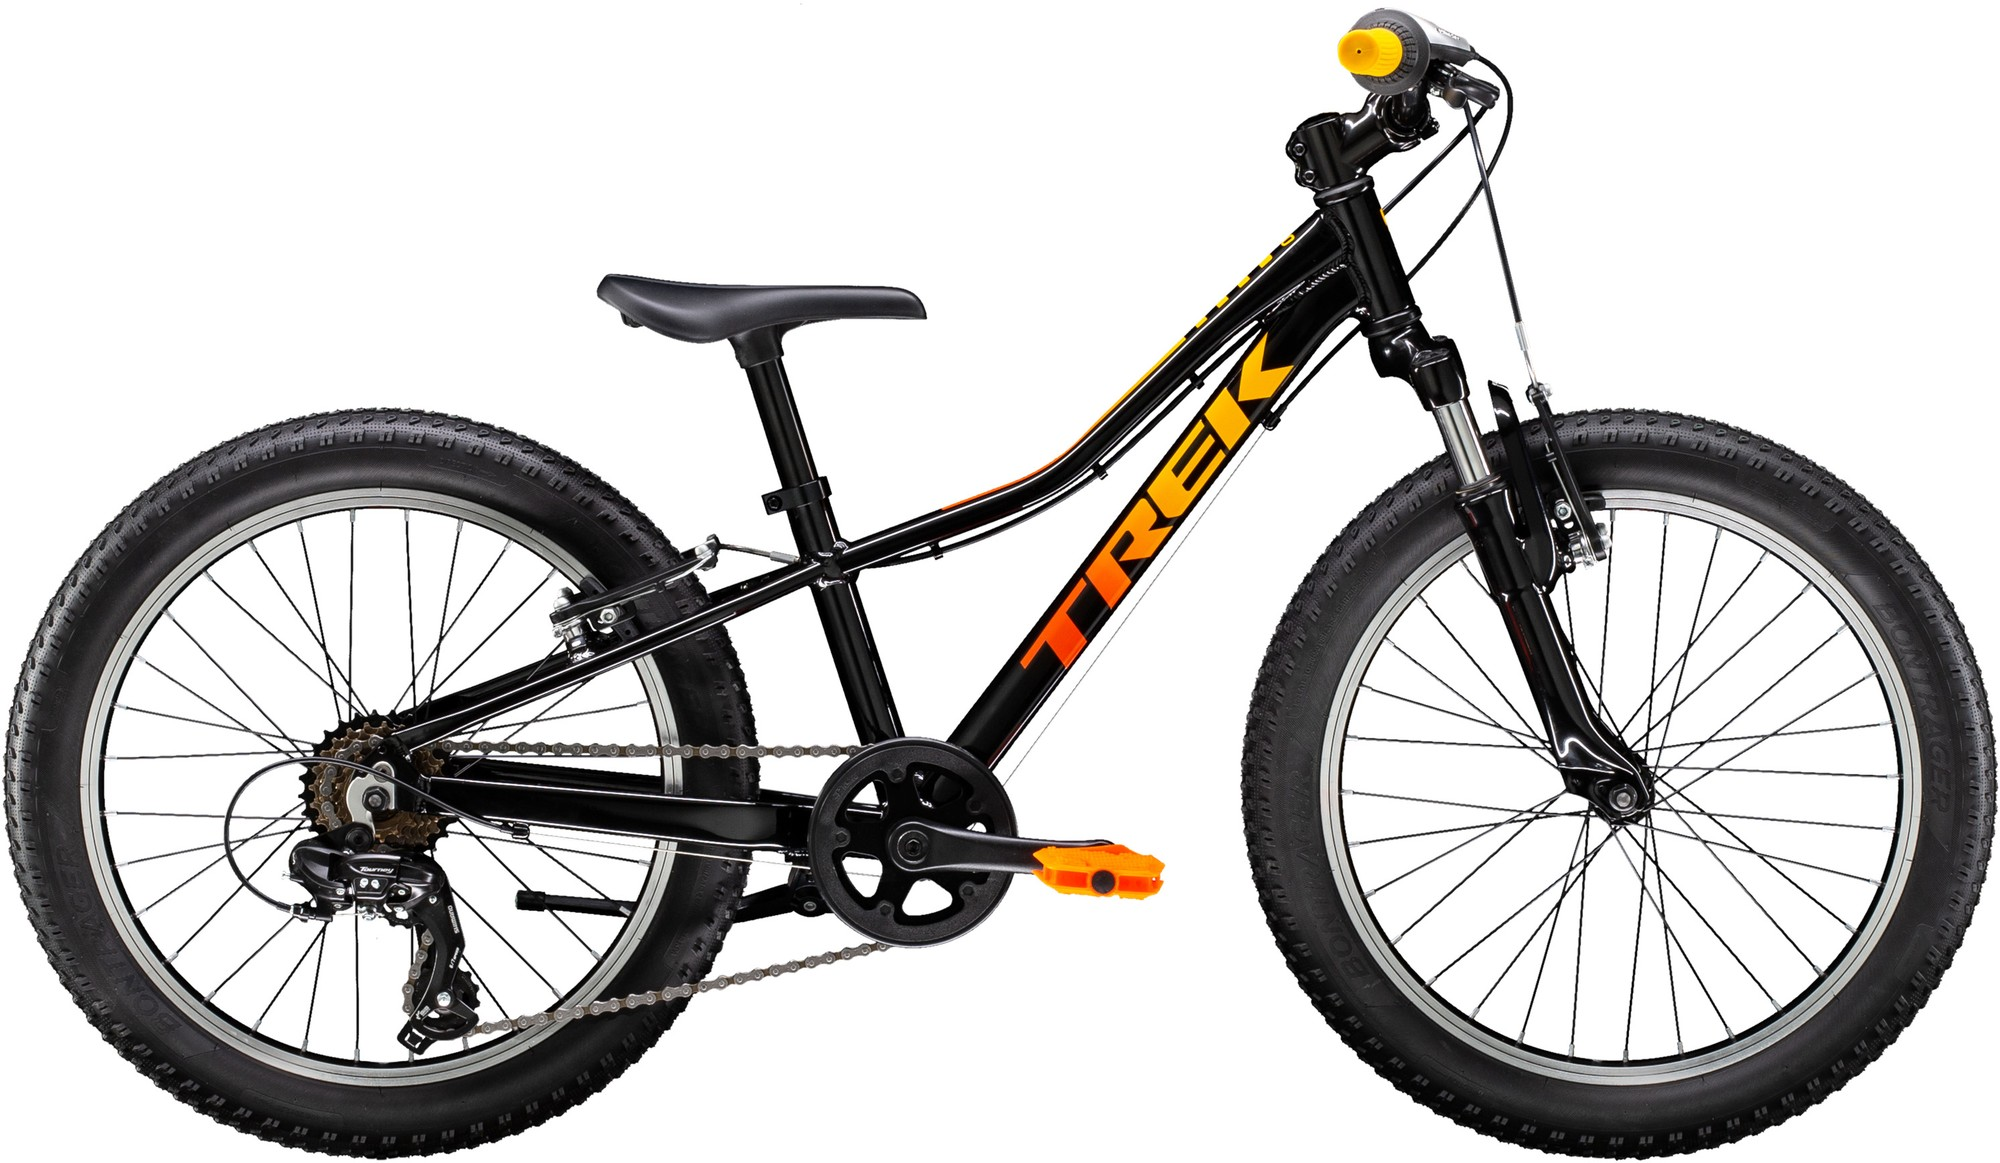 Trek Велосипед подростковый Trek Precaliber 20 7sp Boys 20 велосипед trek top fuel 9 9 rsl 2017